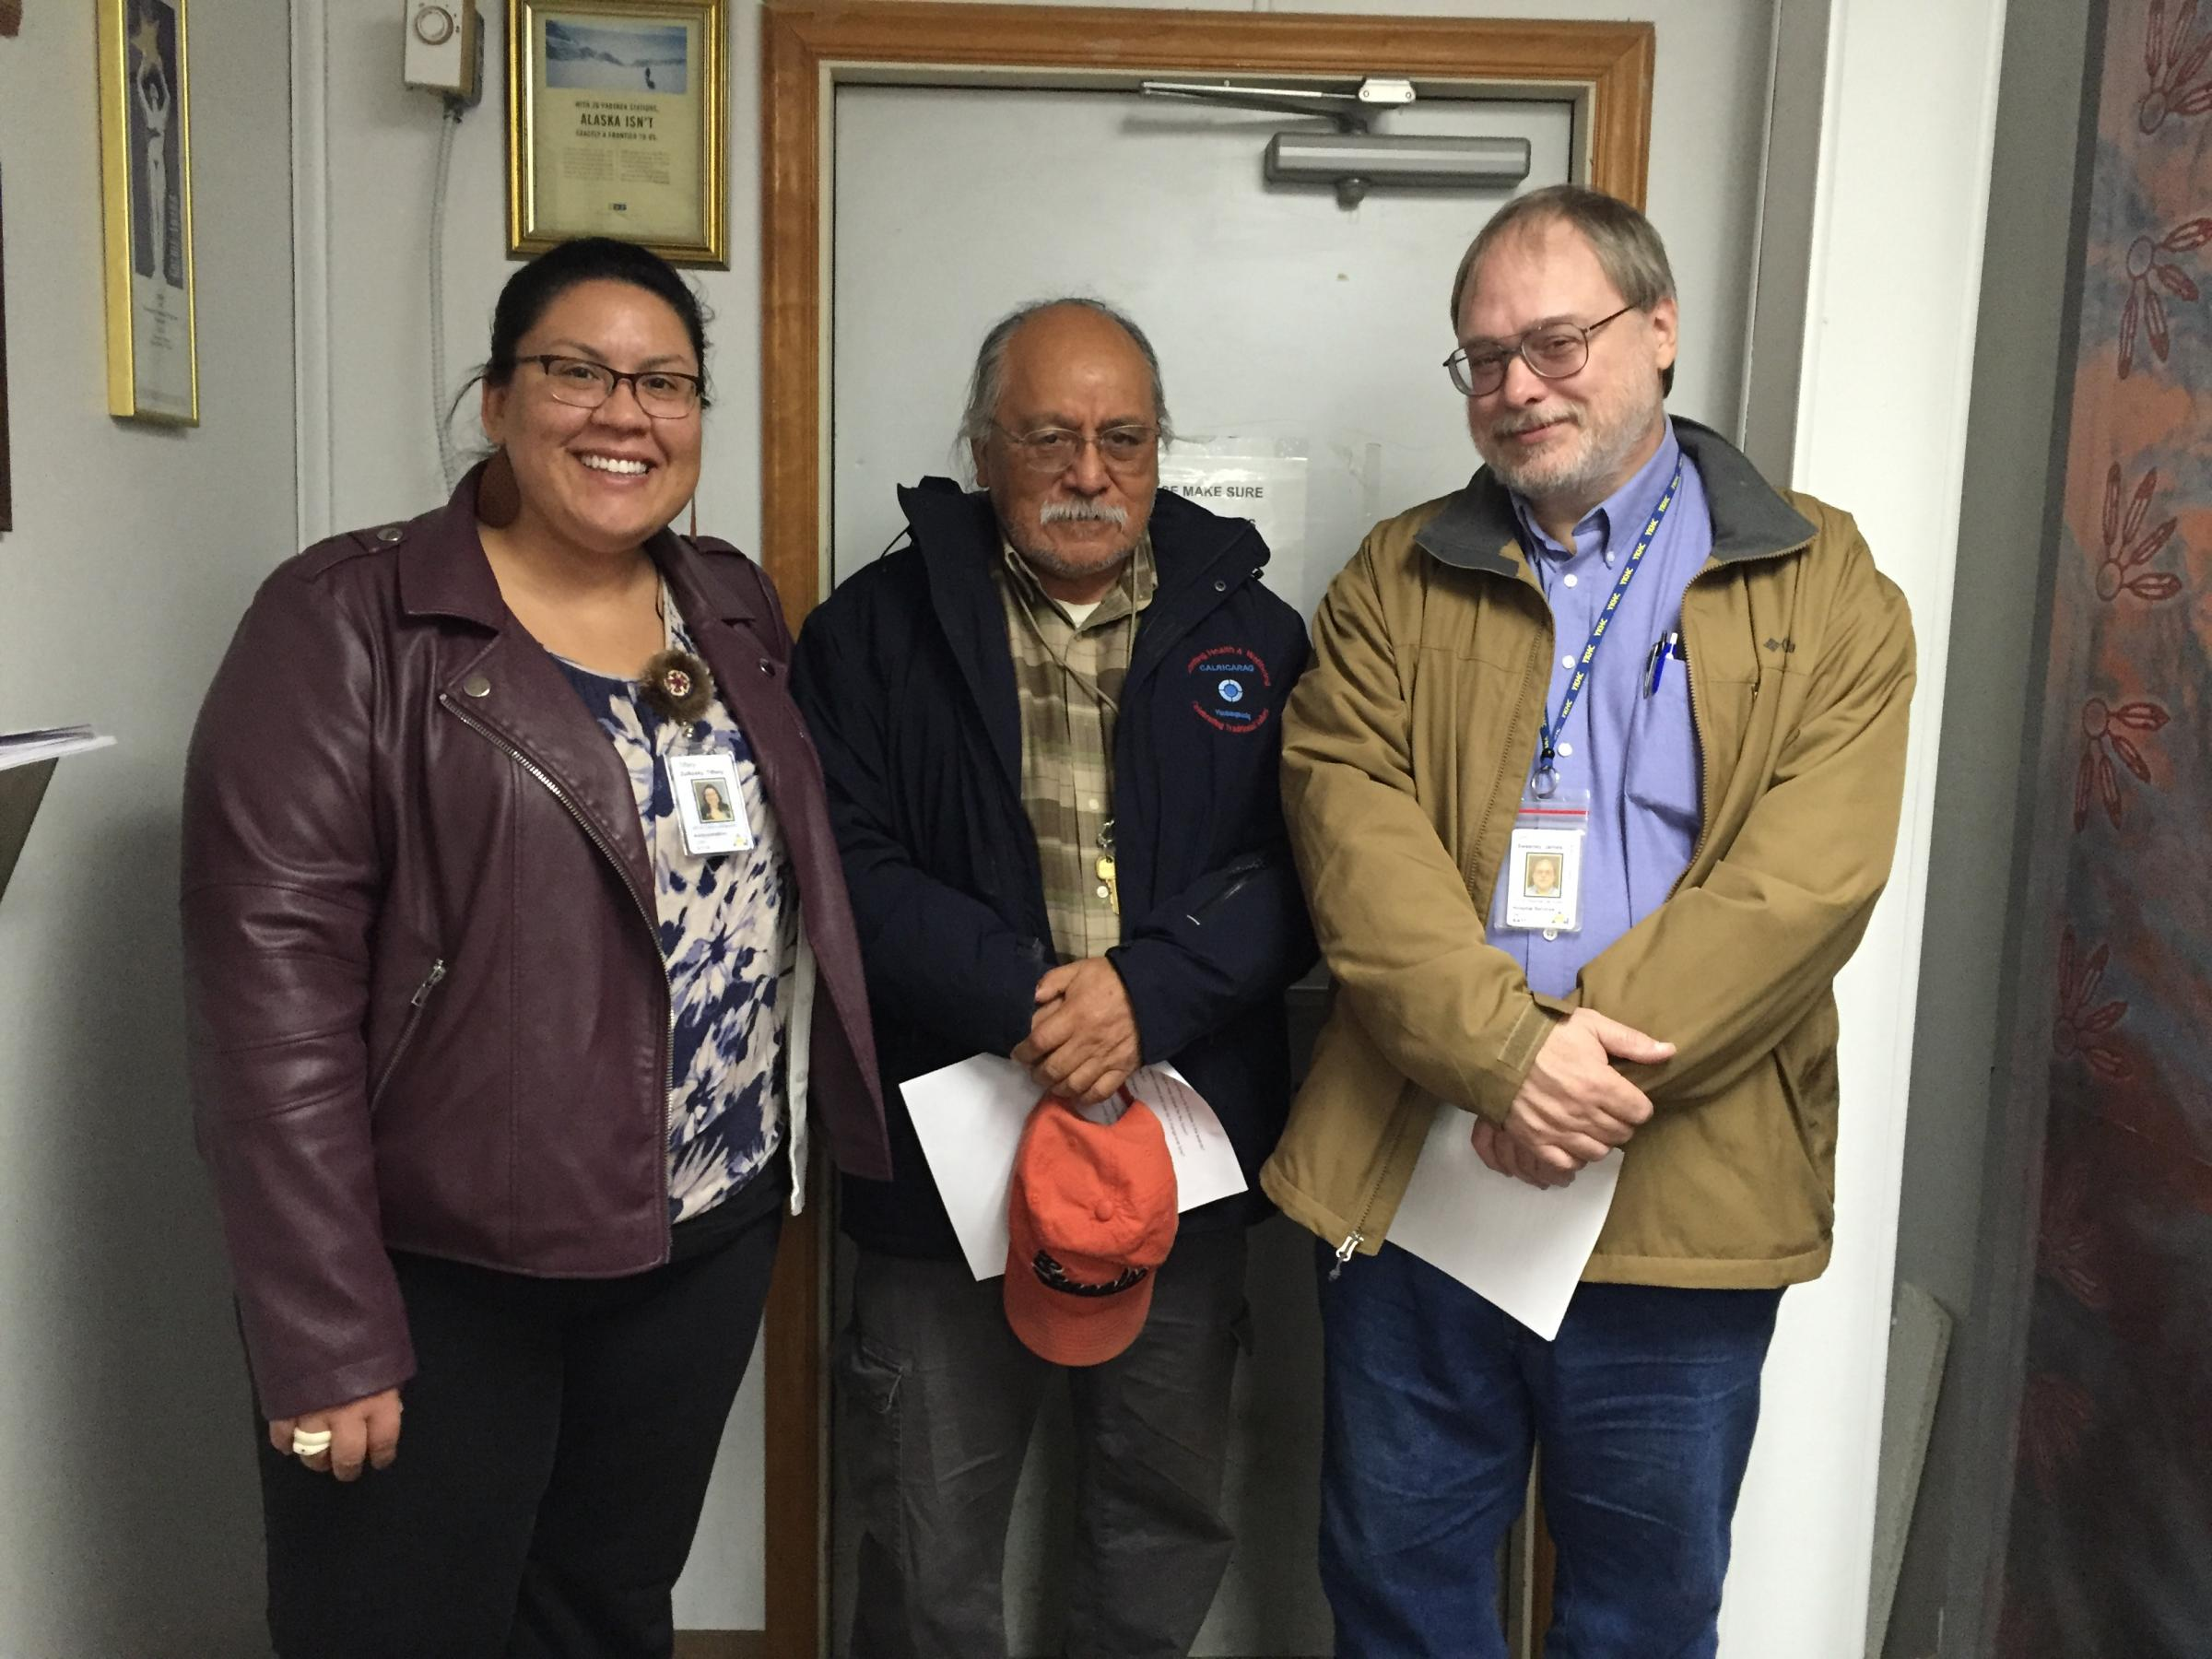 Left to right: YKHC VP of Communications Tiffany Zulkosky, Behavioral Health Administrator Ray Daw, and VP of Hospital Services Jim Sweeney. (Photo by Charles Enoch, KYUK - Bethel)